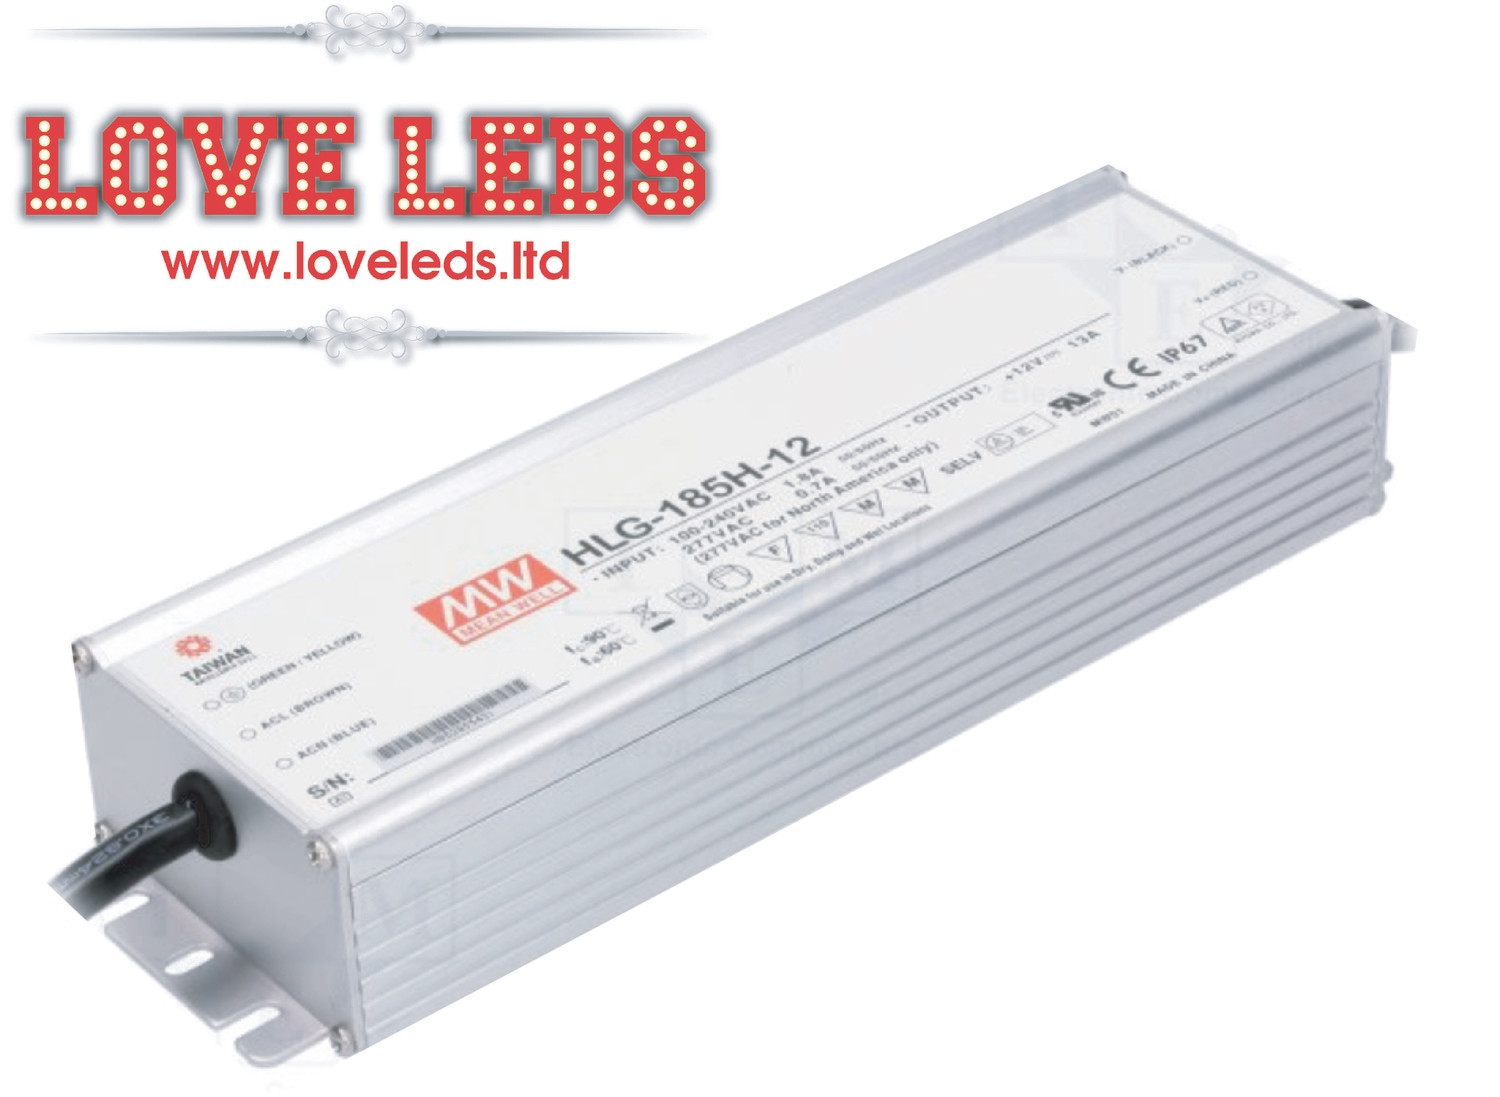 MeanWell HLG-185H-24A